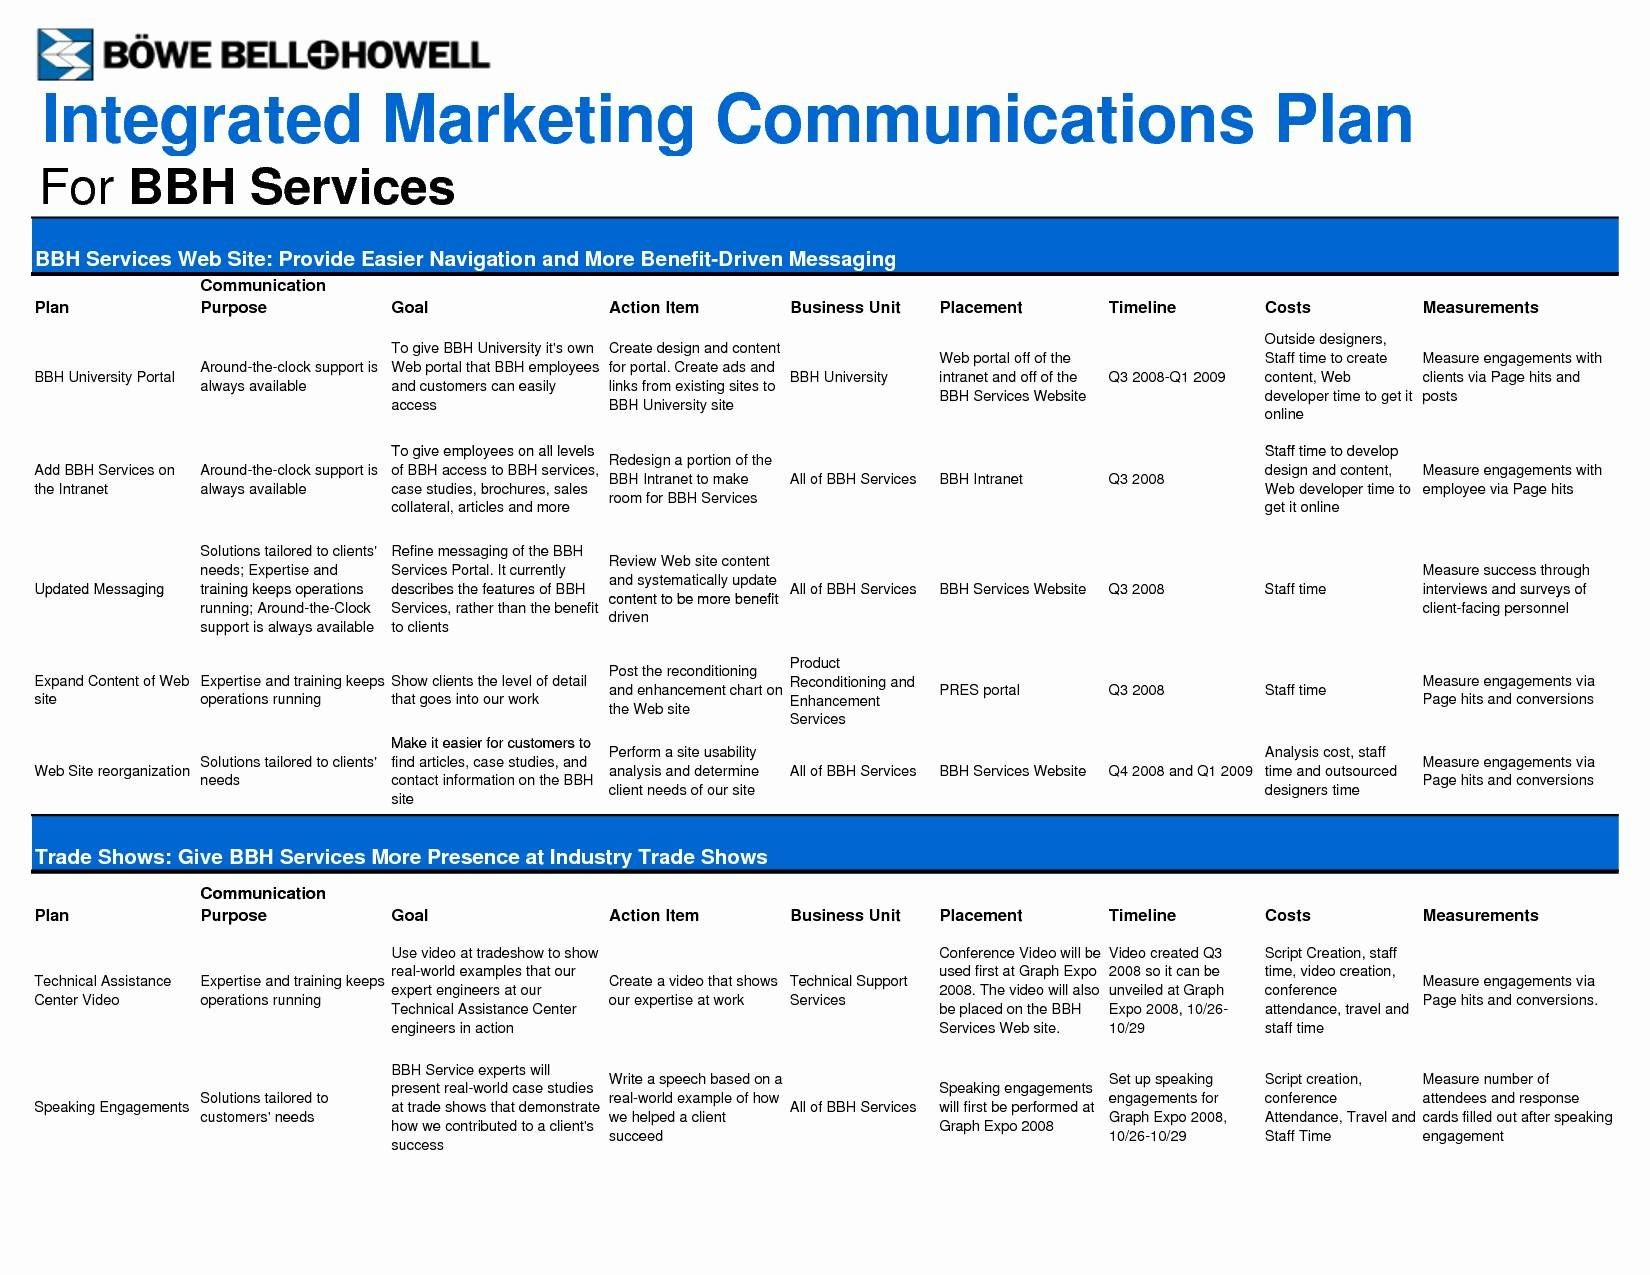 004 Surprising Communication Plan Template Excel Image  Marketing EventFull